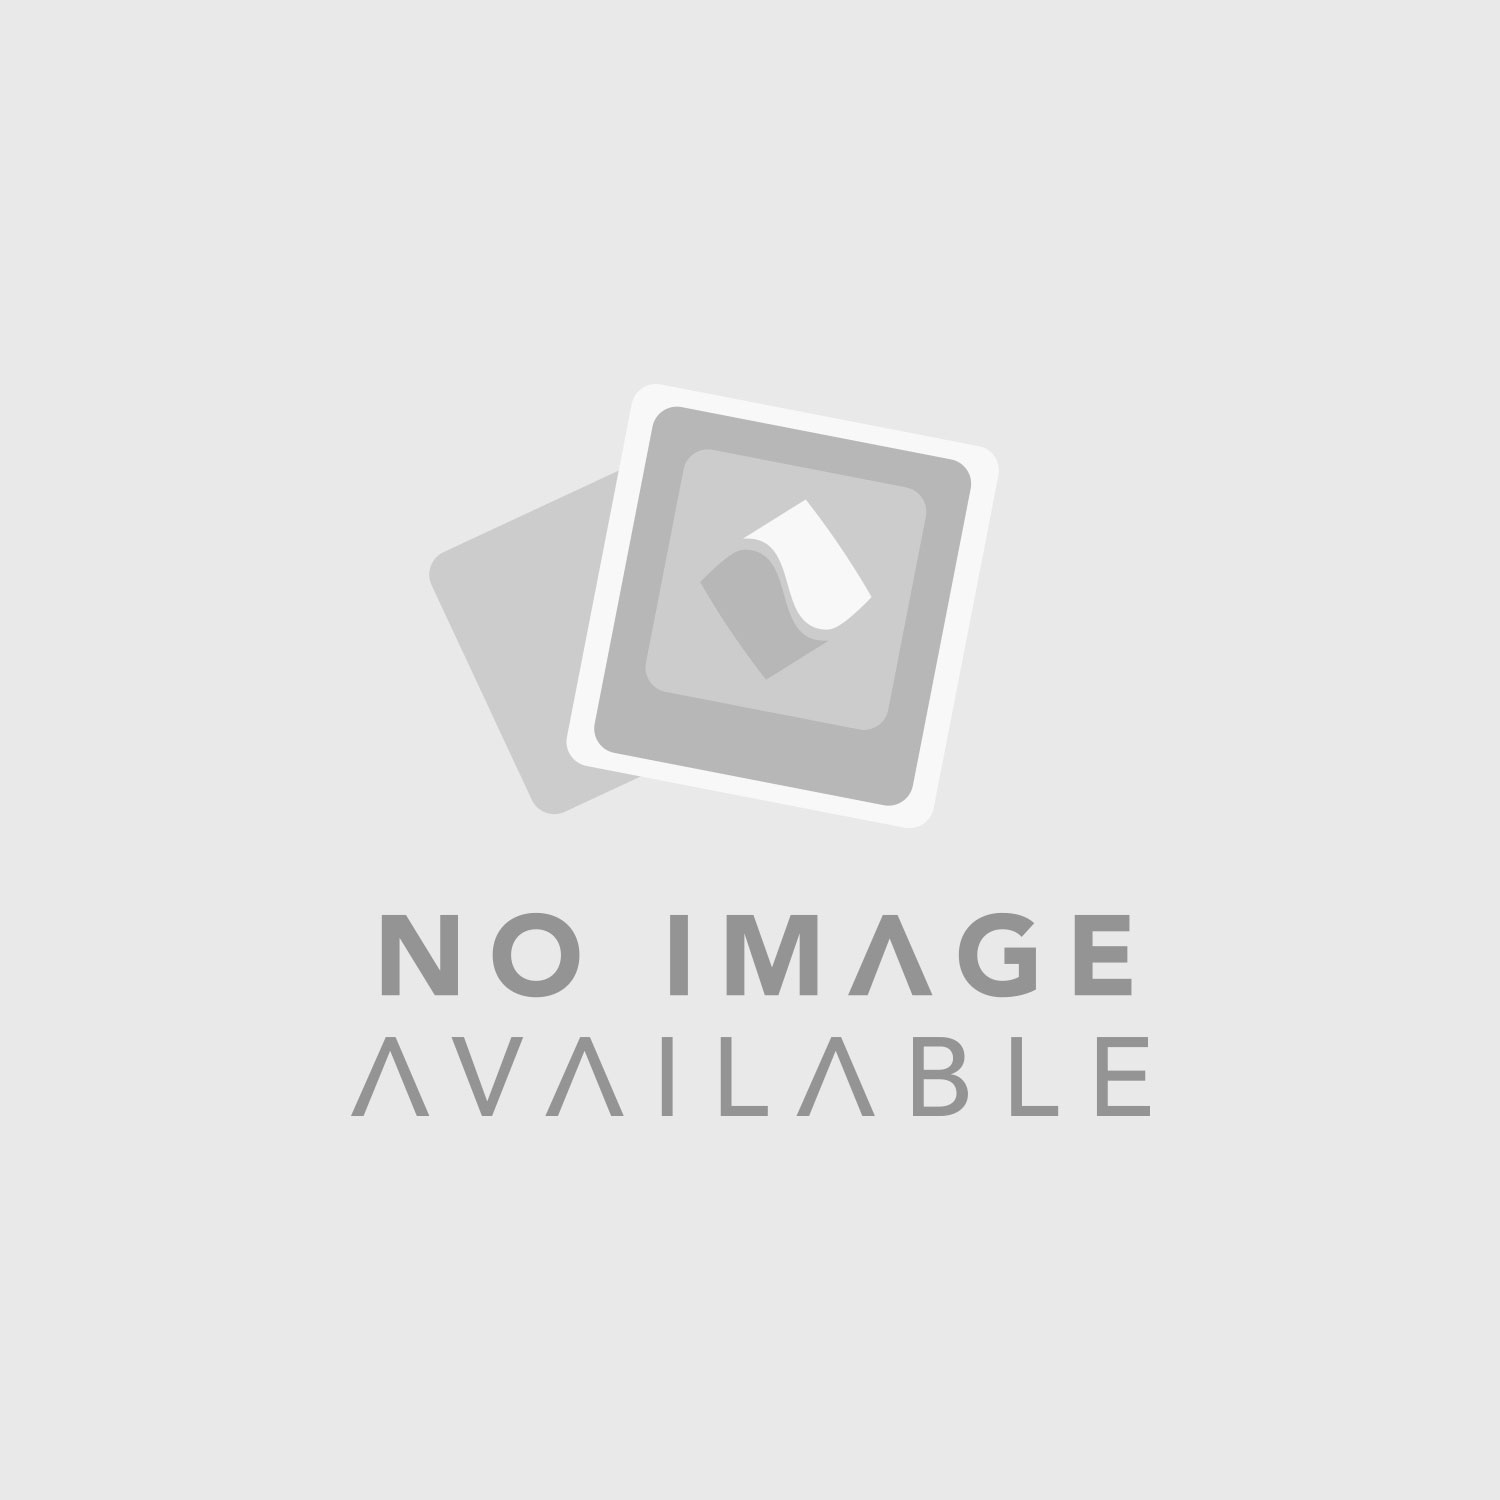 Neutrik XXR-5 Color Coding Ring (Green)